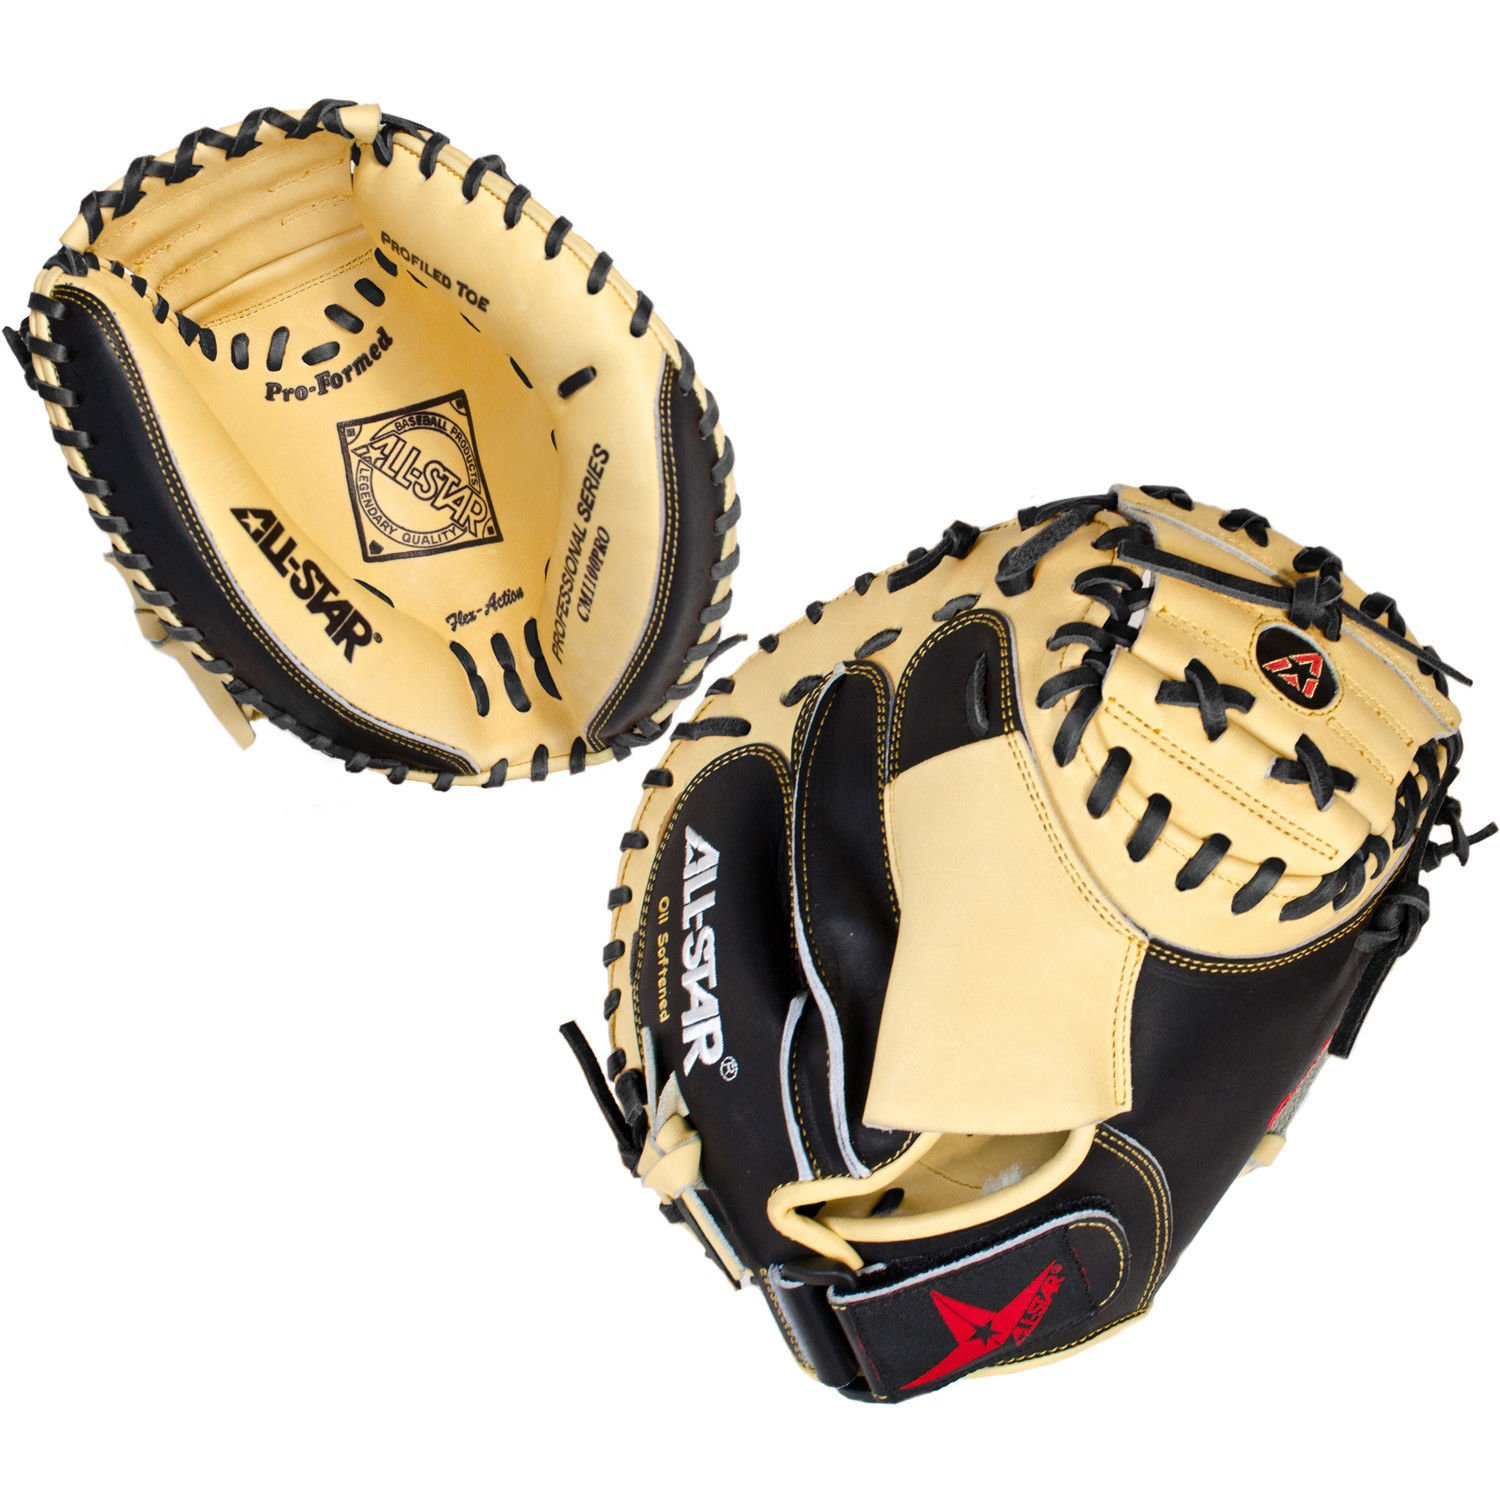 All-Star Youth Pro Series 31.5'' Catcher's Mitt by All star